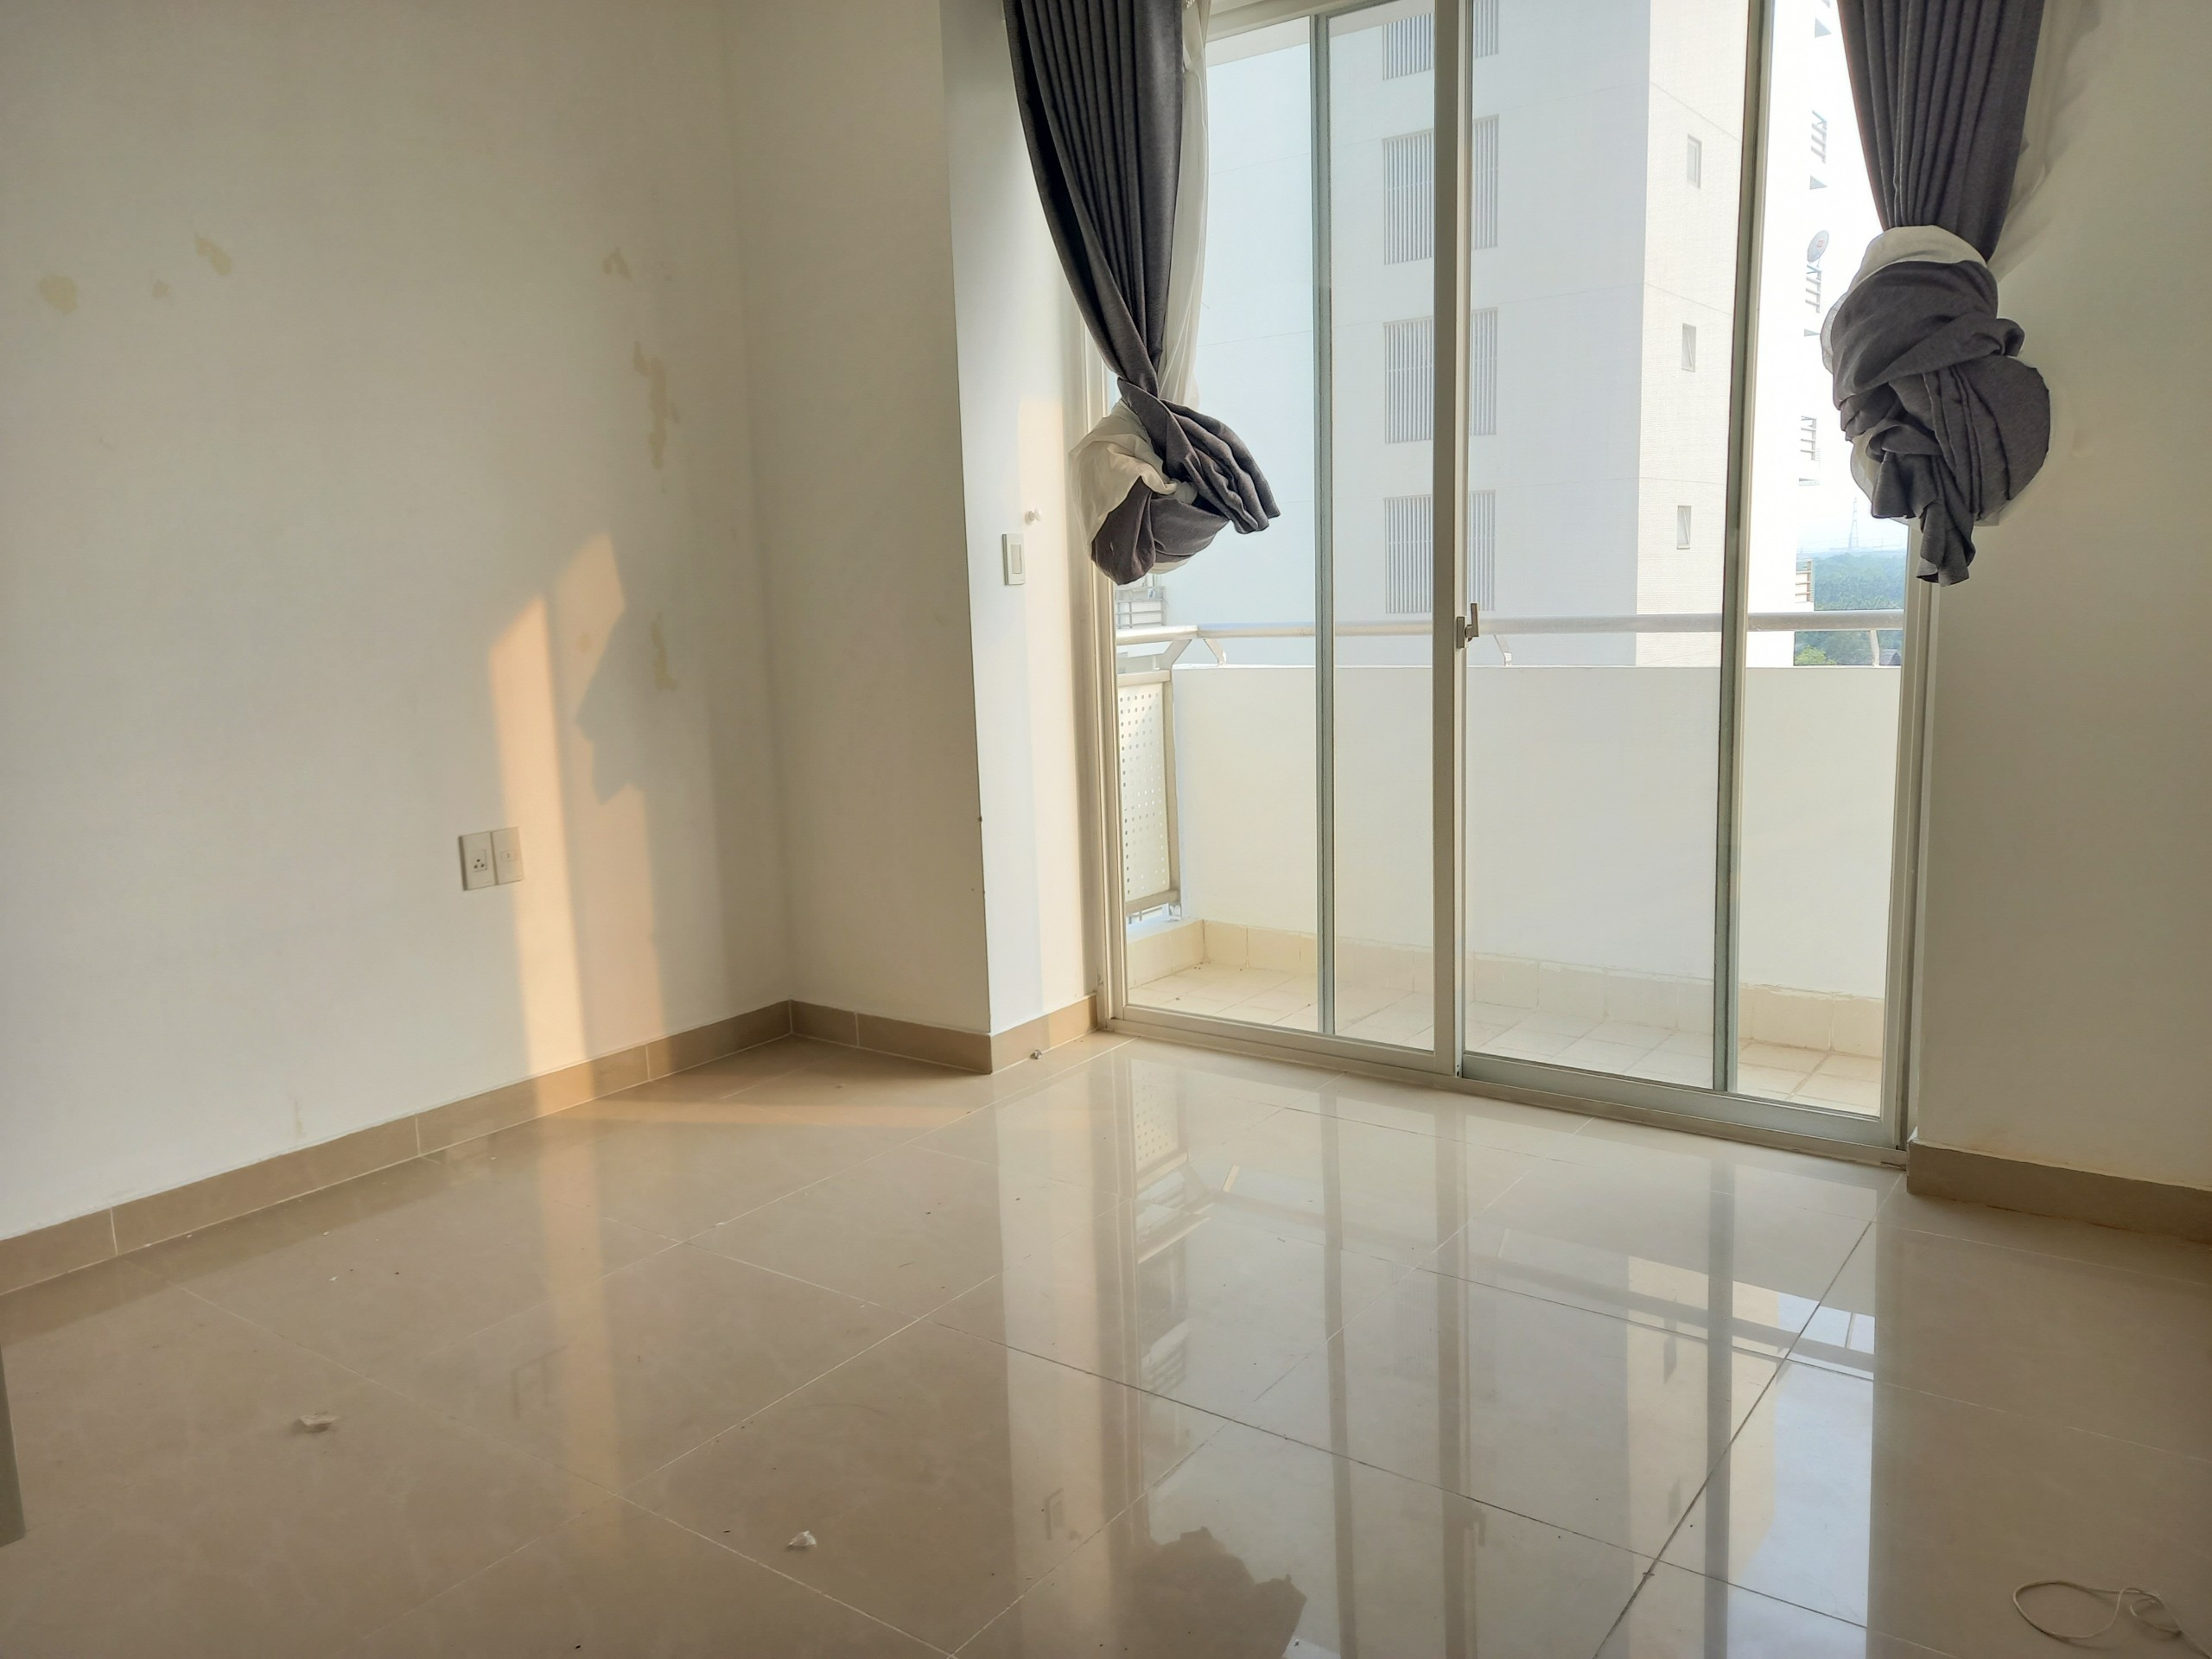 No-option-apartment-for-rent-near-SSIS-school (7)